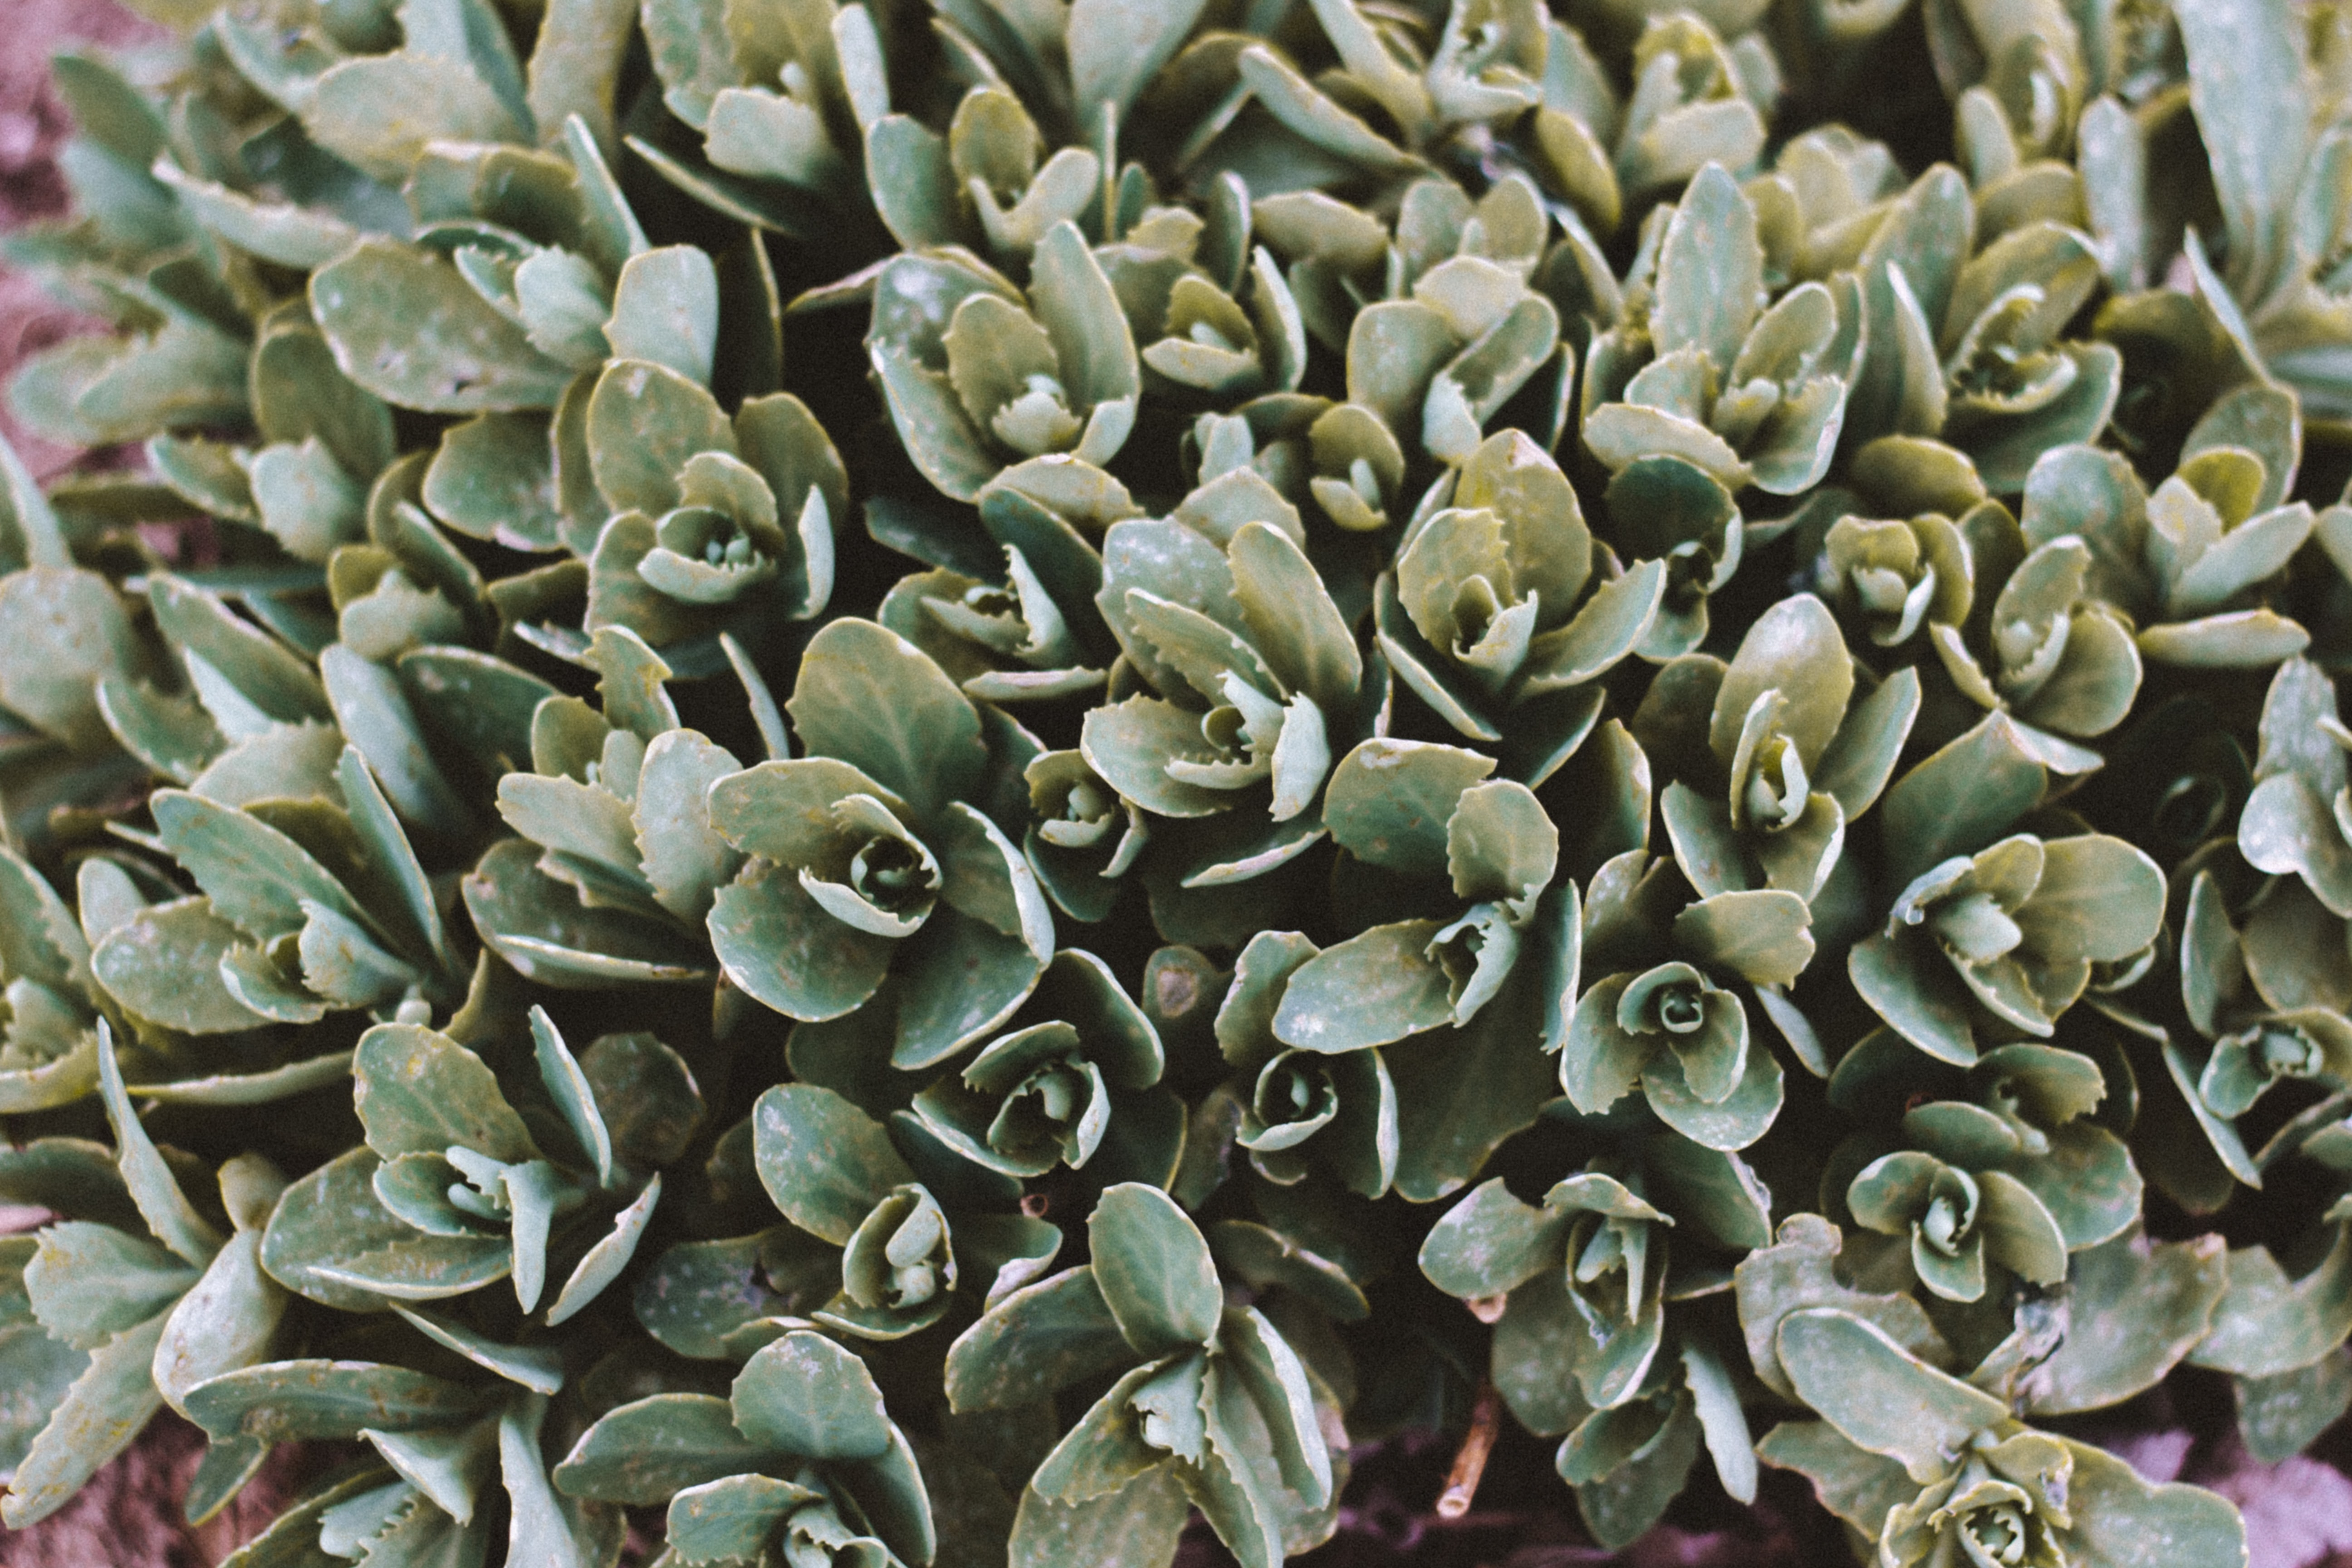 green leafed plant close up photo